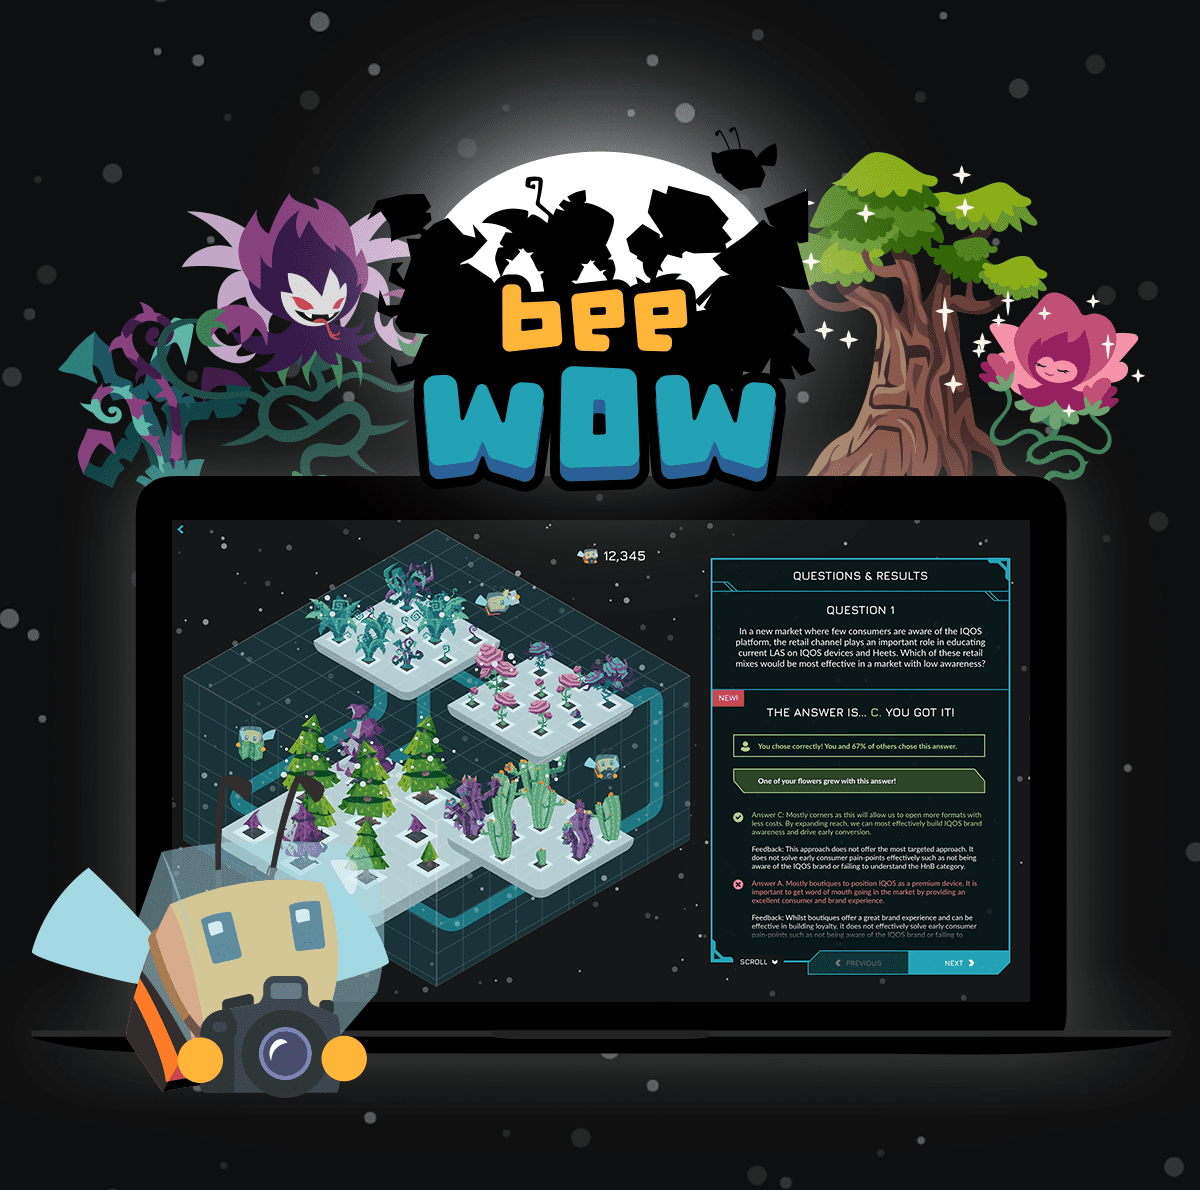 Bee Wow project image